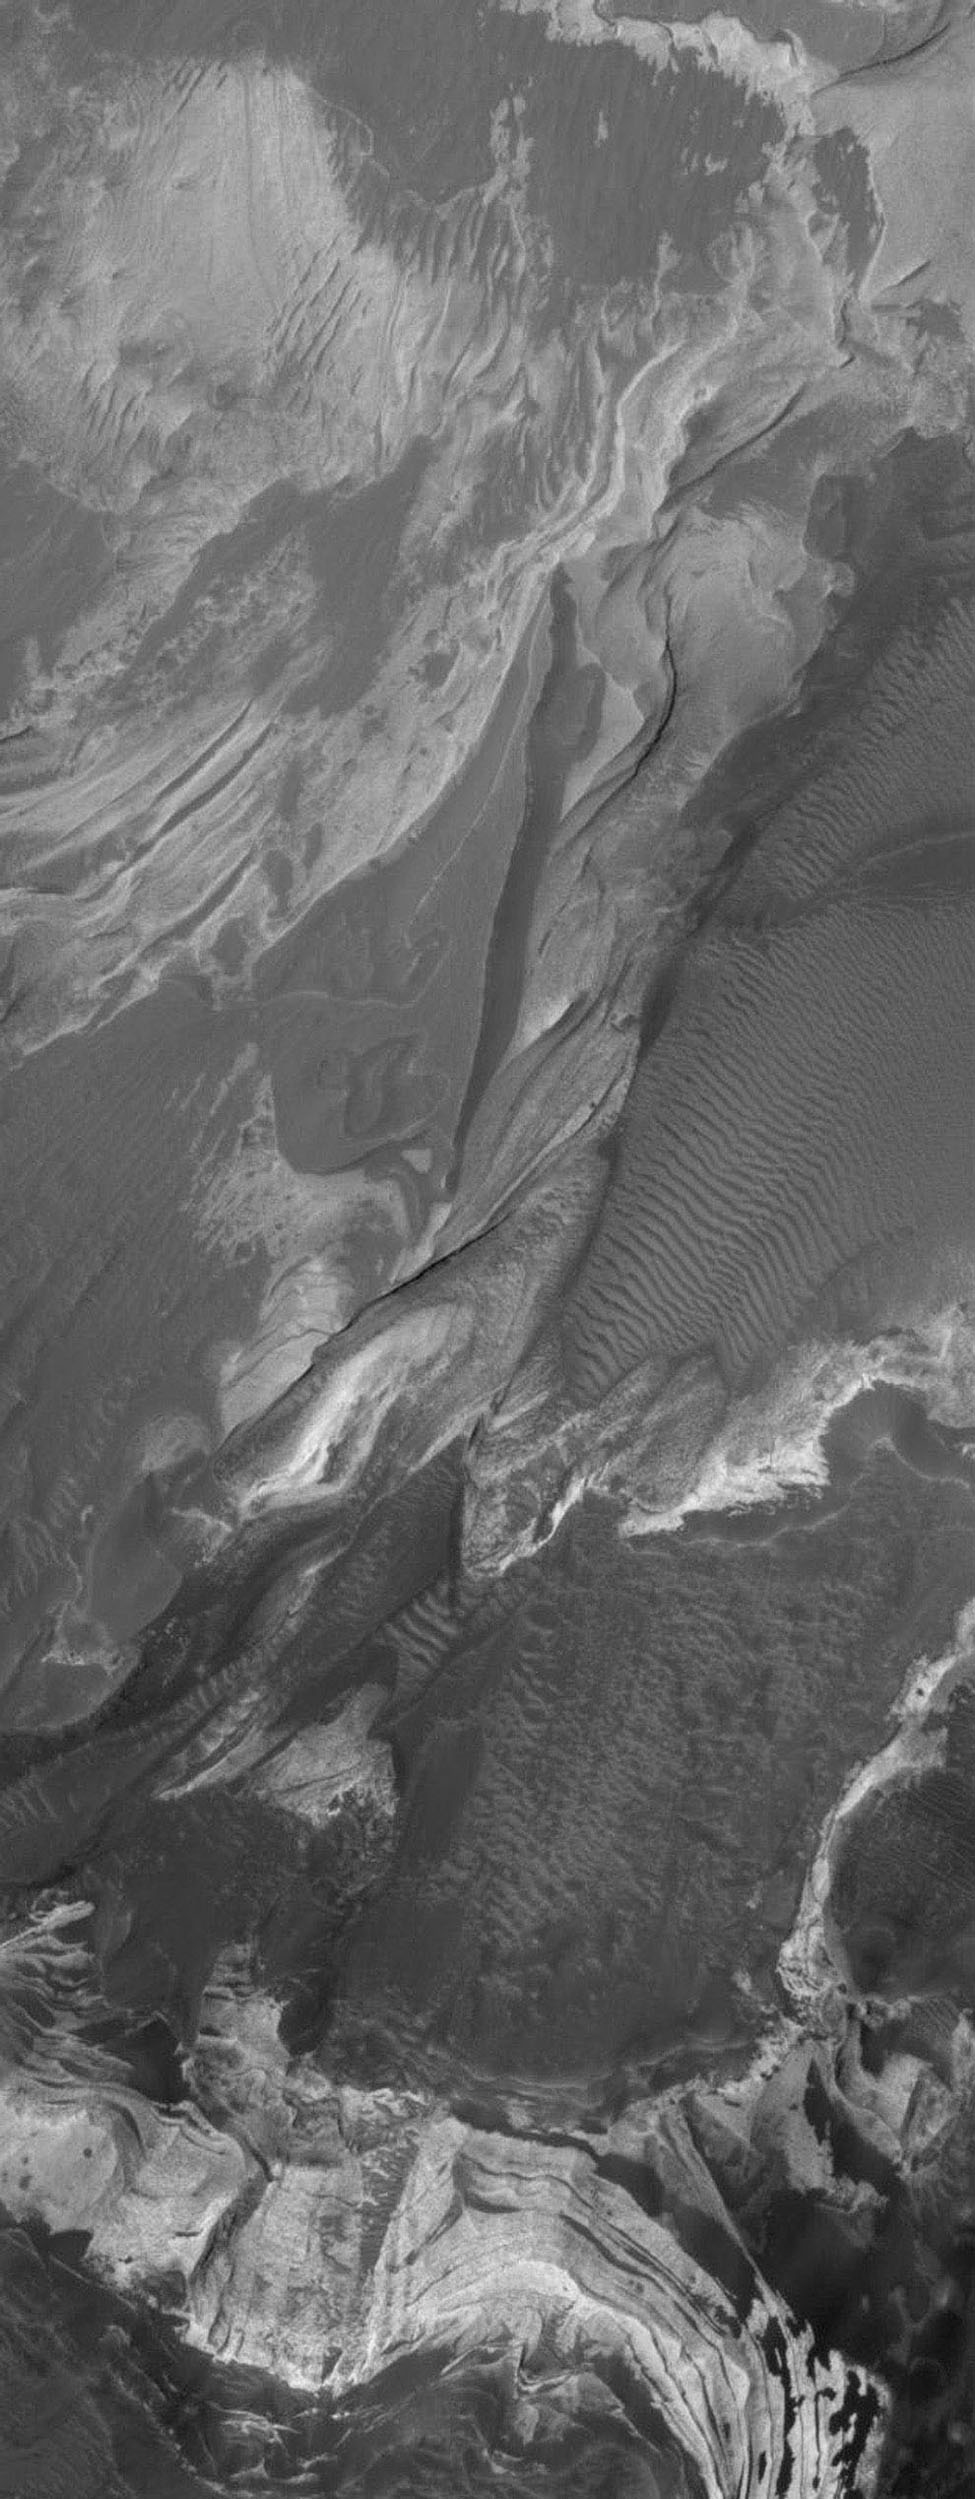 NASA's Mars Global Surveyor shows layered, light-toned, sedimentary rocks that have been exposed by erosion in Coprates Chasma, one of the many chasms which comprise the Valles Marineris trough system on Mars.